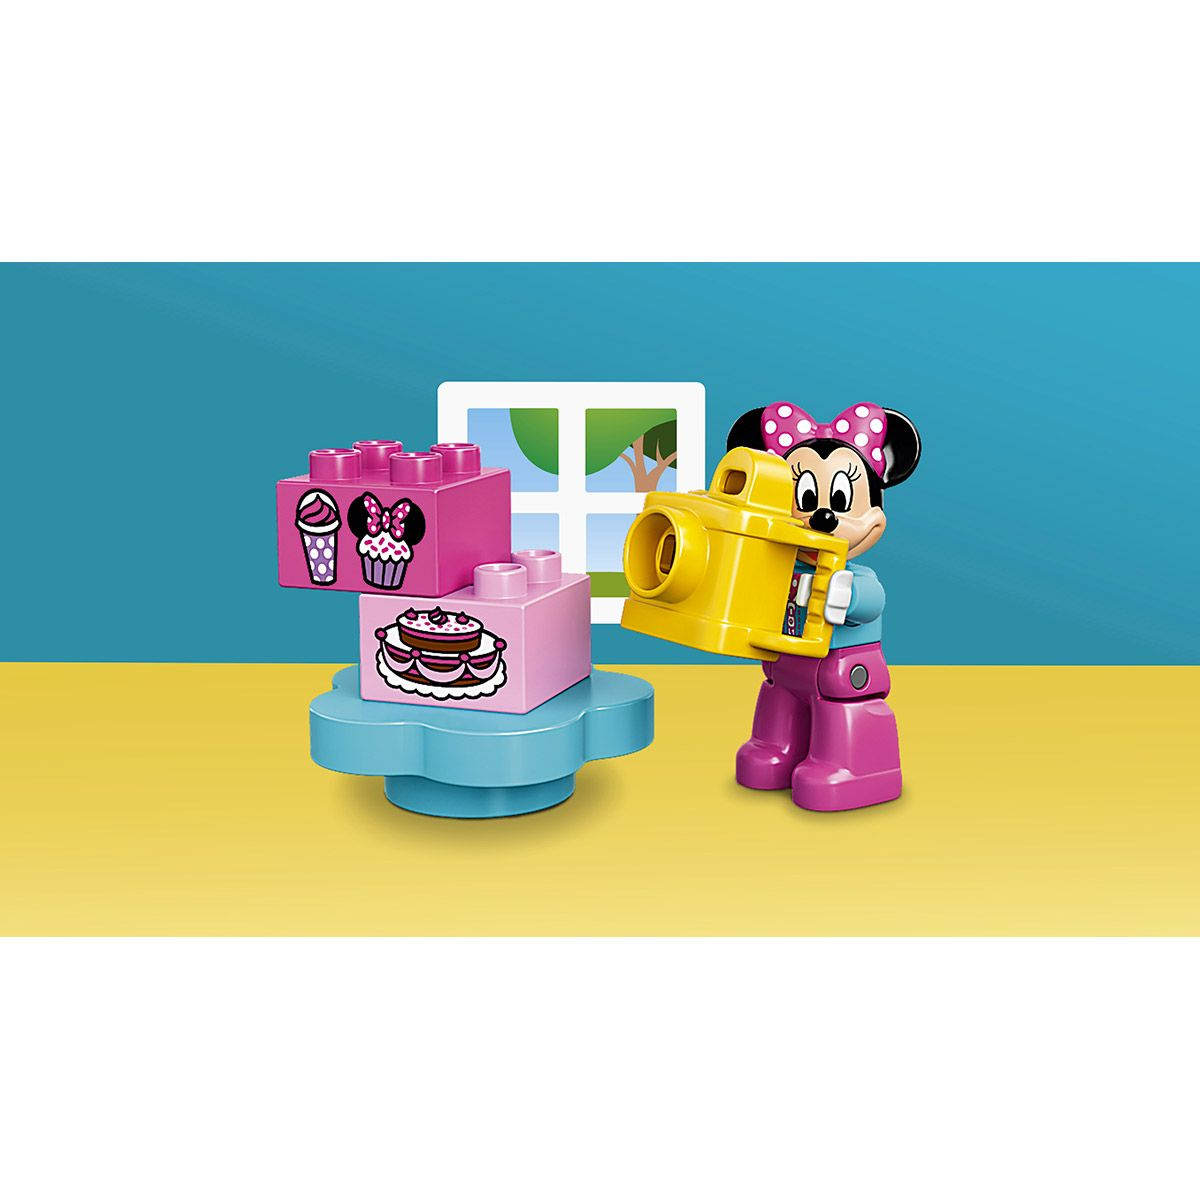 Et Mouse Lego Minnie Duplo Mickey Princesses Cafe Univers dCxoBe